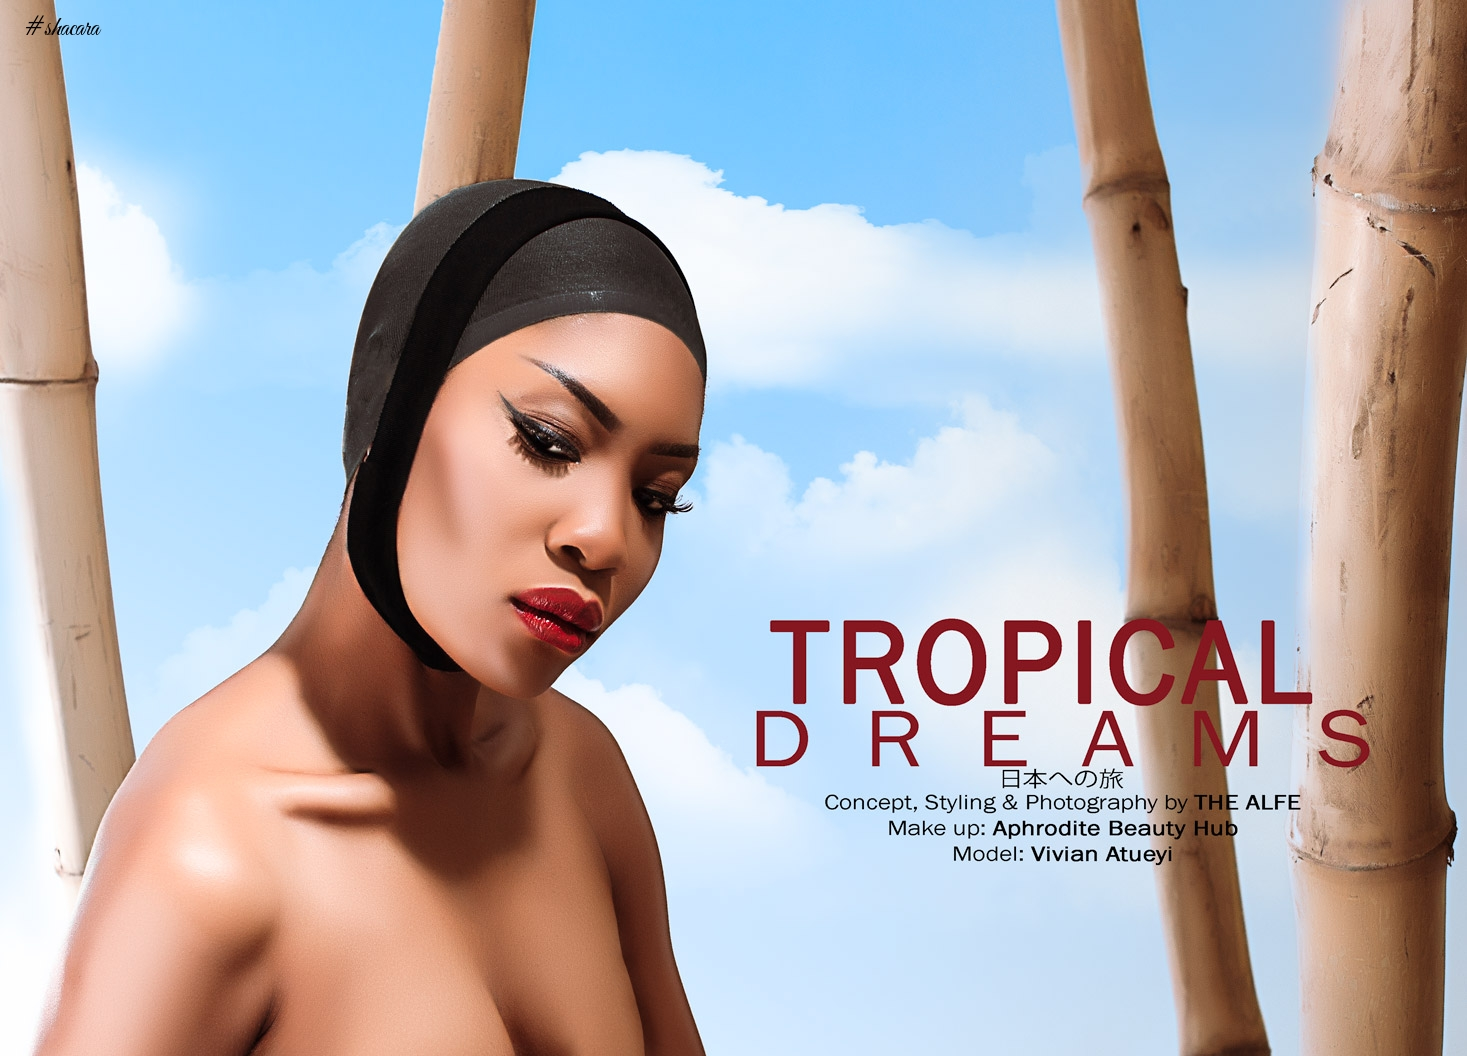 Nigerian Photographer The Alfe Presents 'Tropical Dreams'